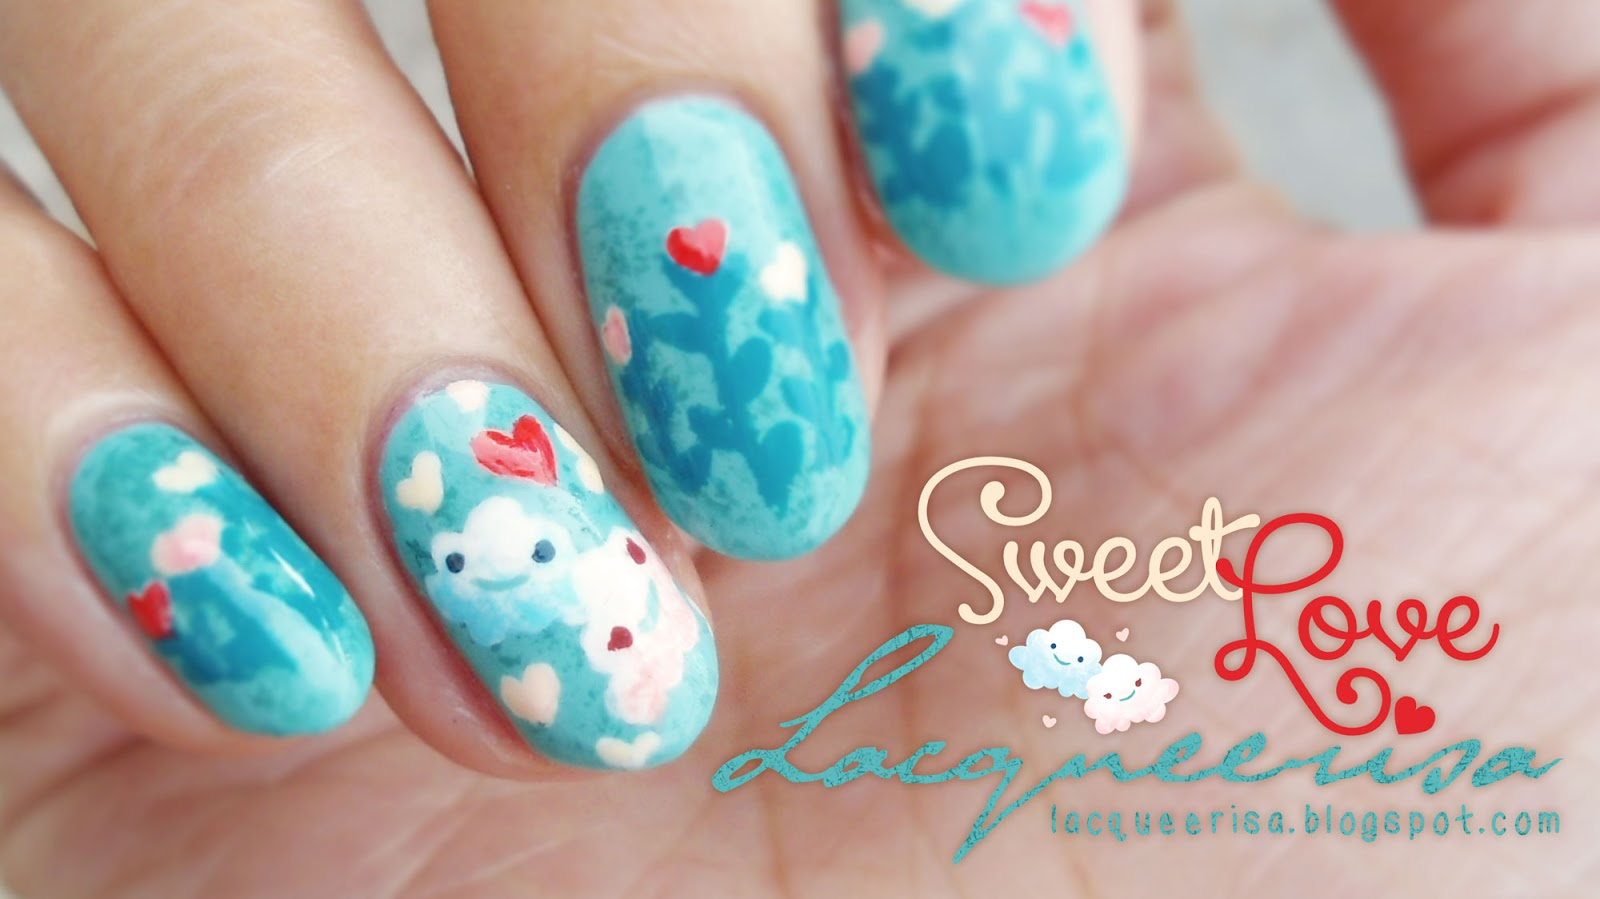 Lacqueerisa: Sweet Love